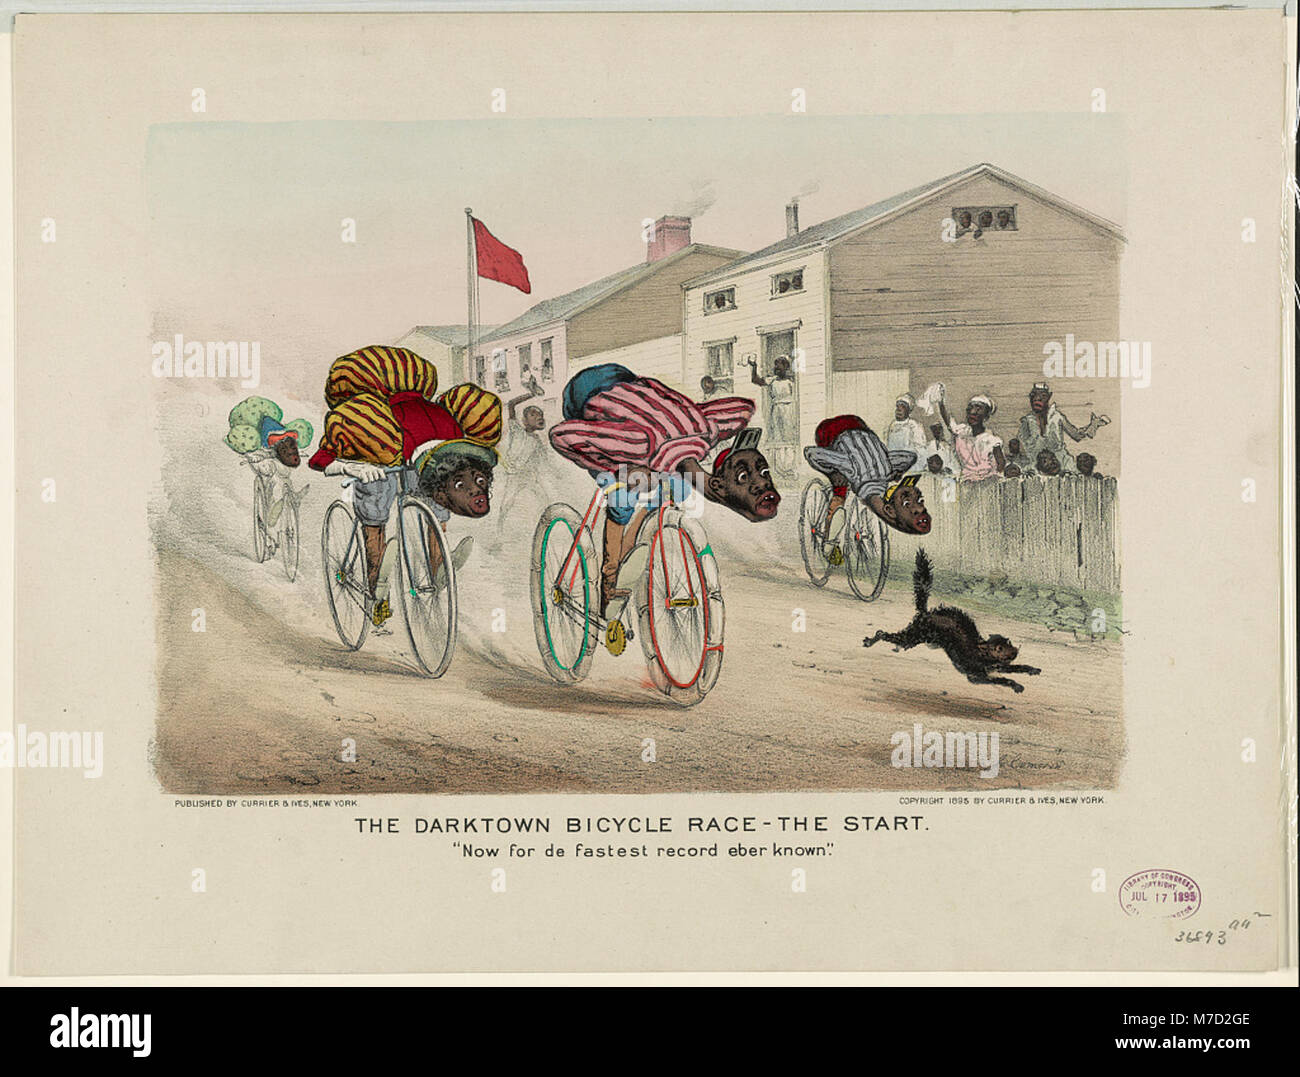 The darktown bicycle race-the start- 'Now for de fastest record eber known' LCCN91724154 - Stock Image